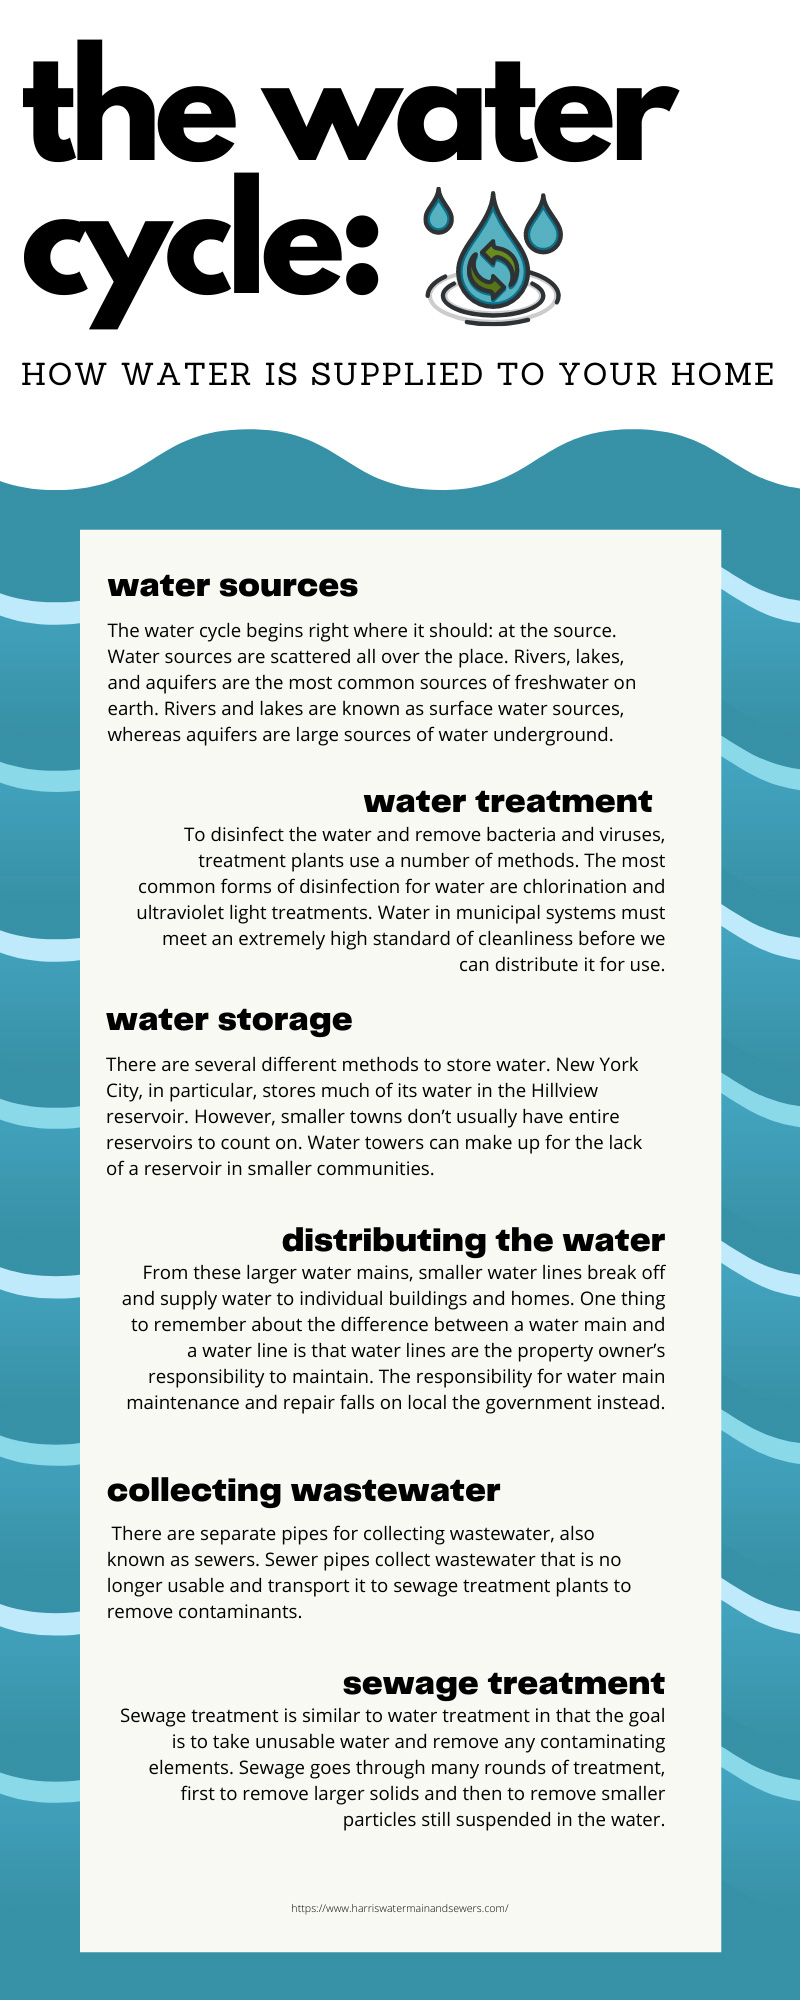 The Water Cycle: How Water Is Supplied to Your Home